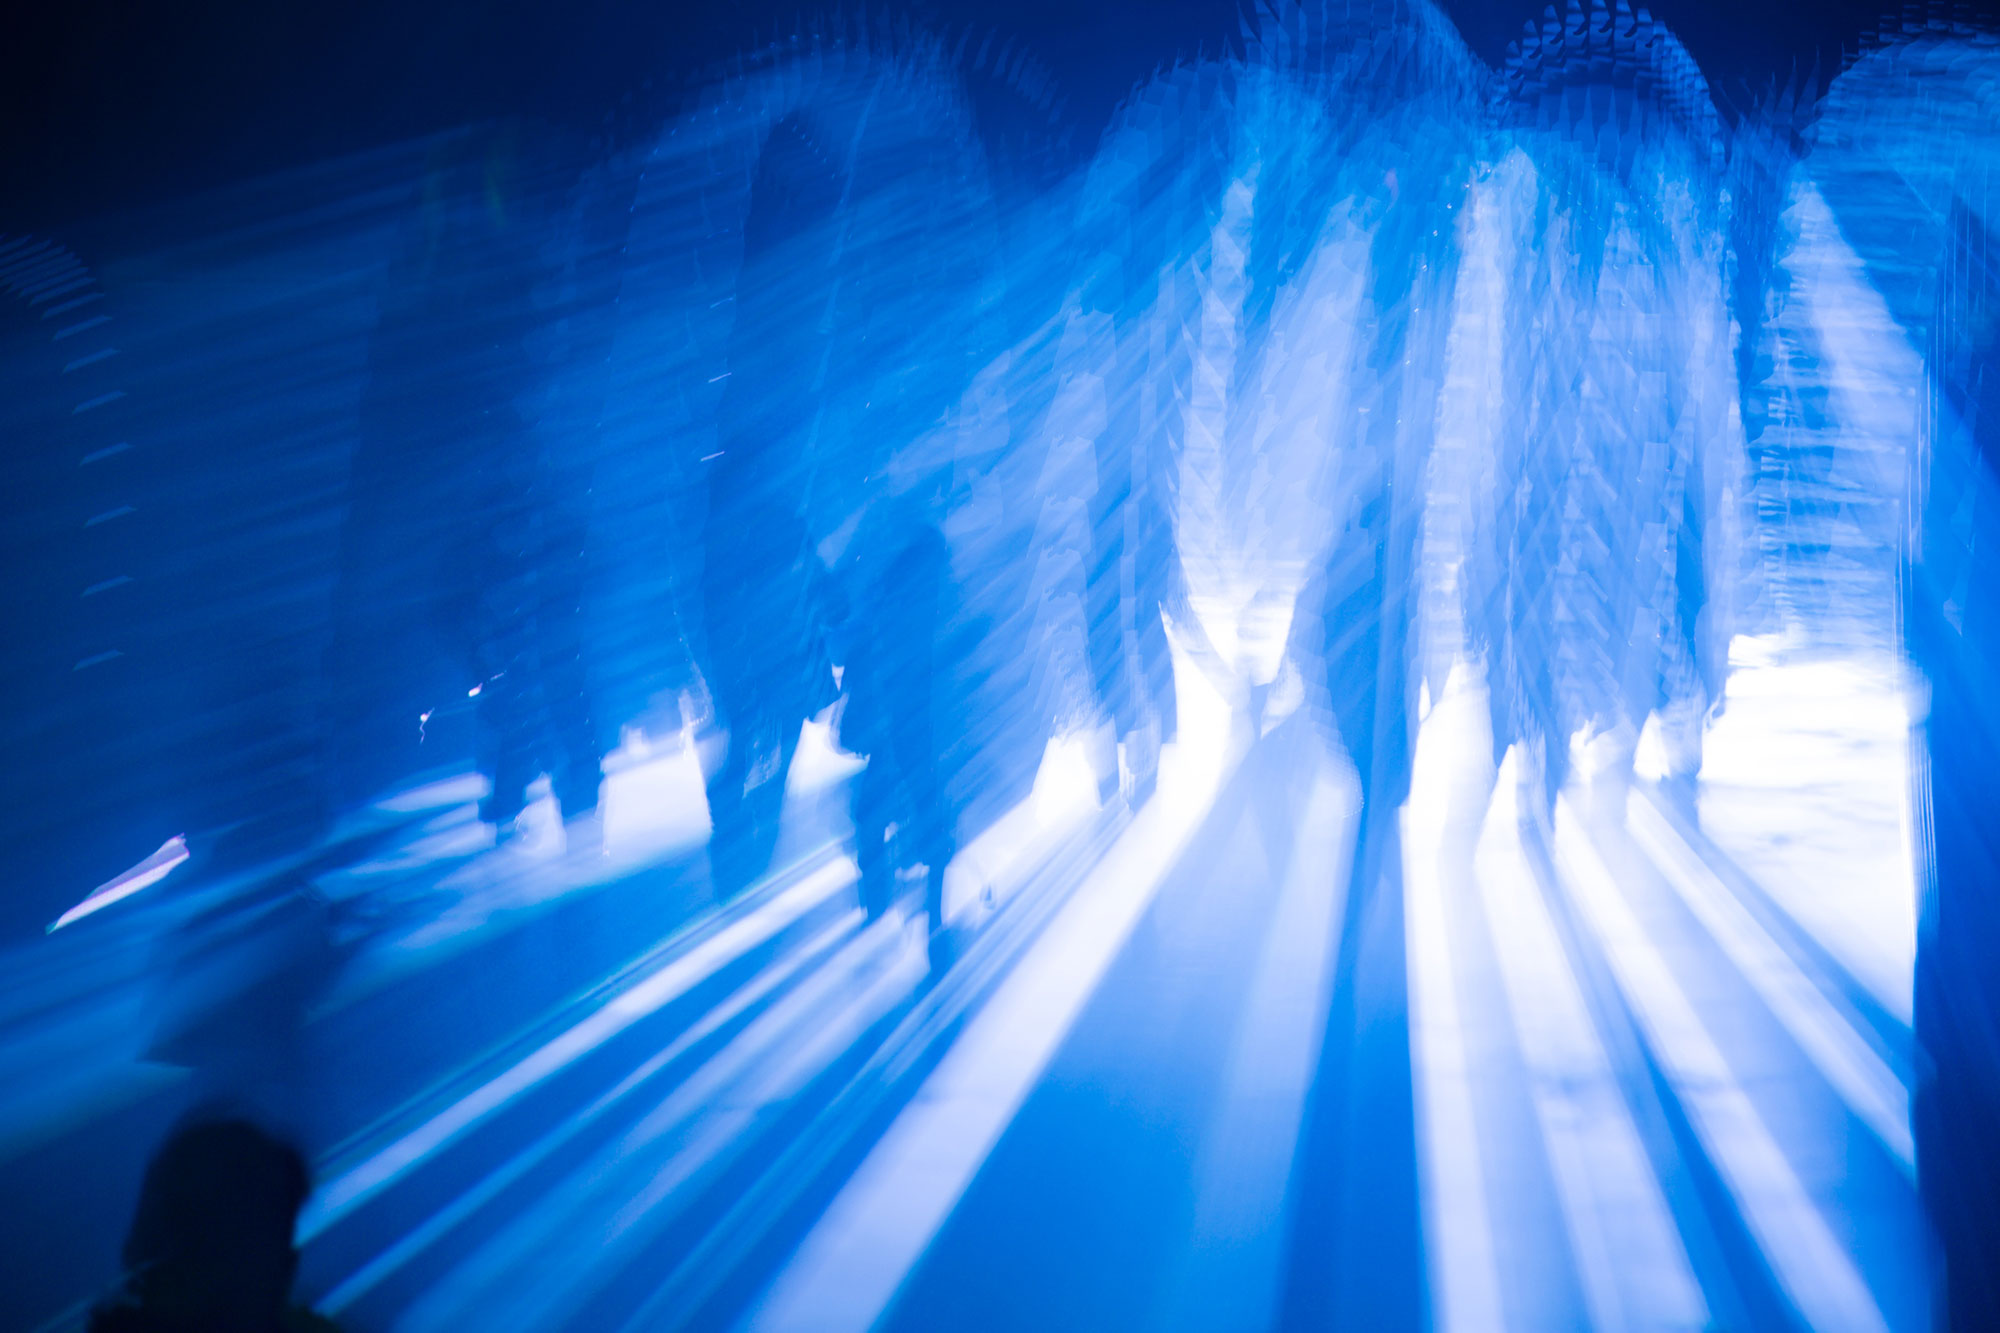 How Do Spirits Communicate With Us? | LoveToKnow